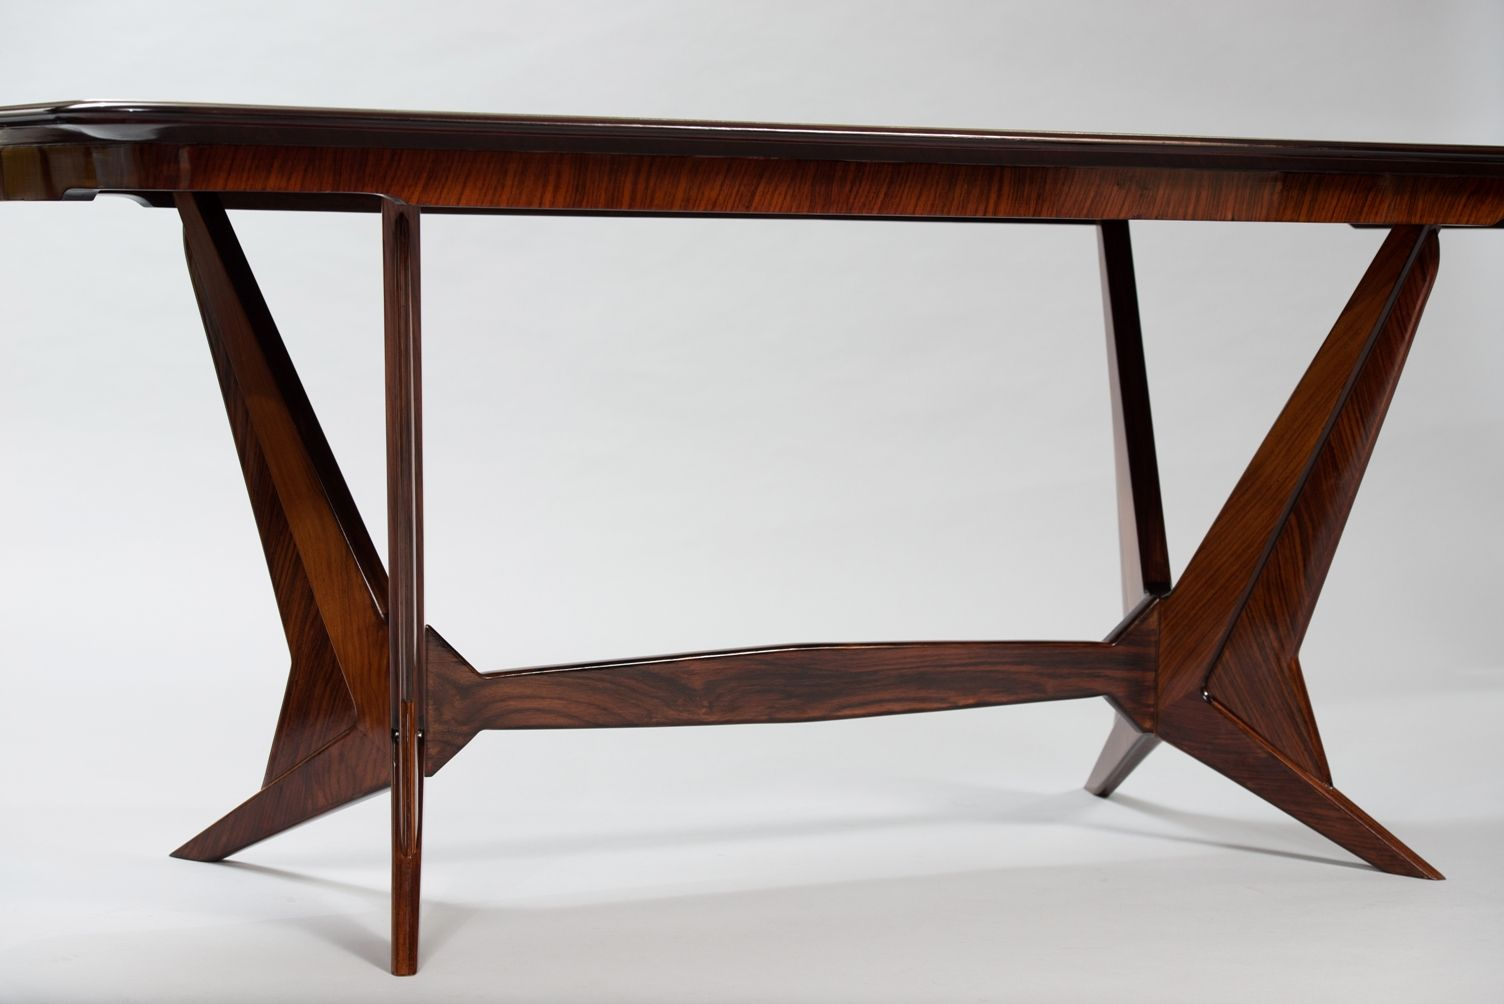 Italian Glass Dining Table Italian Mid Century Rosewood Dining Table With Glass Top For Sale